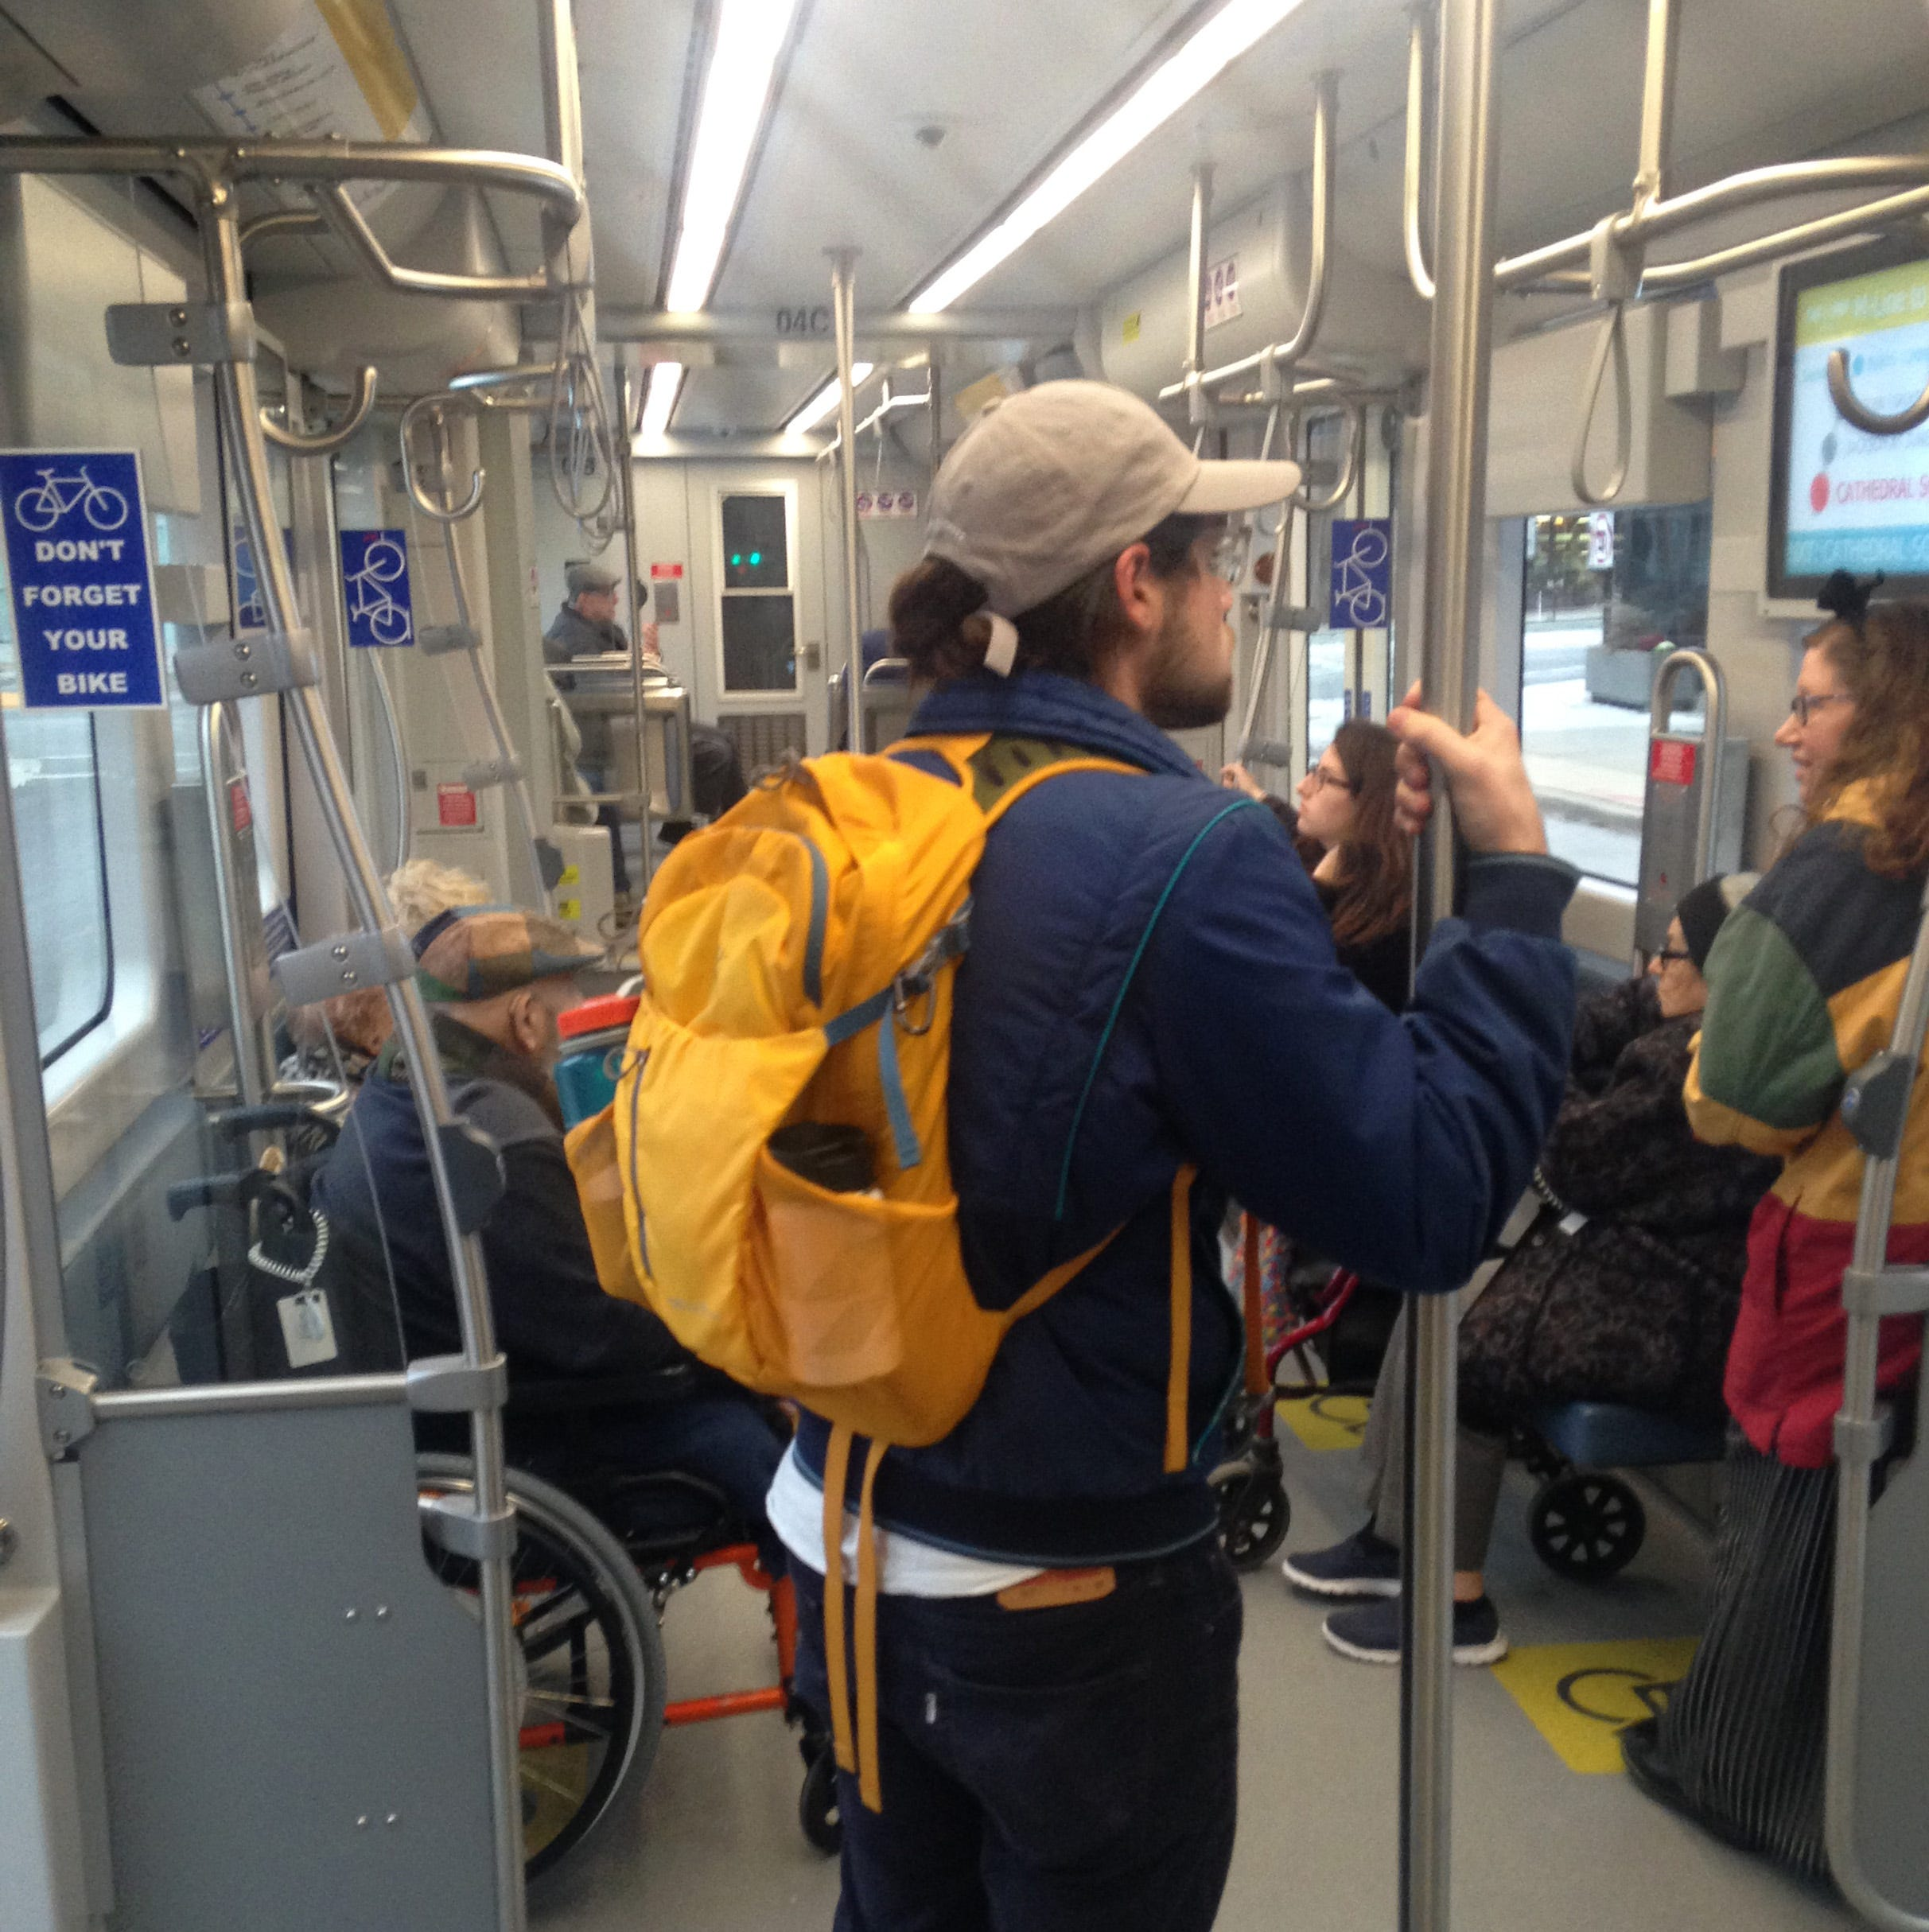 Stingl: You have to root for The Hop streetcar, a fellow rider told me, because 'it's here'